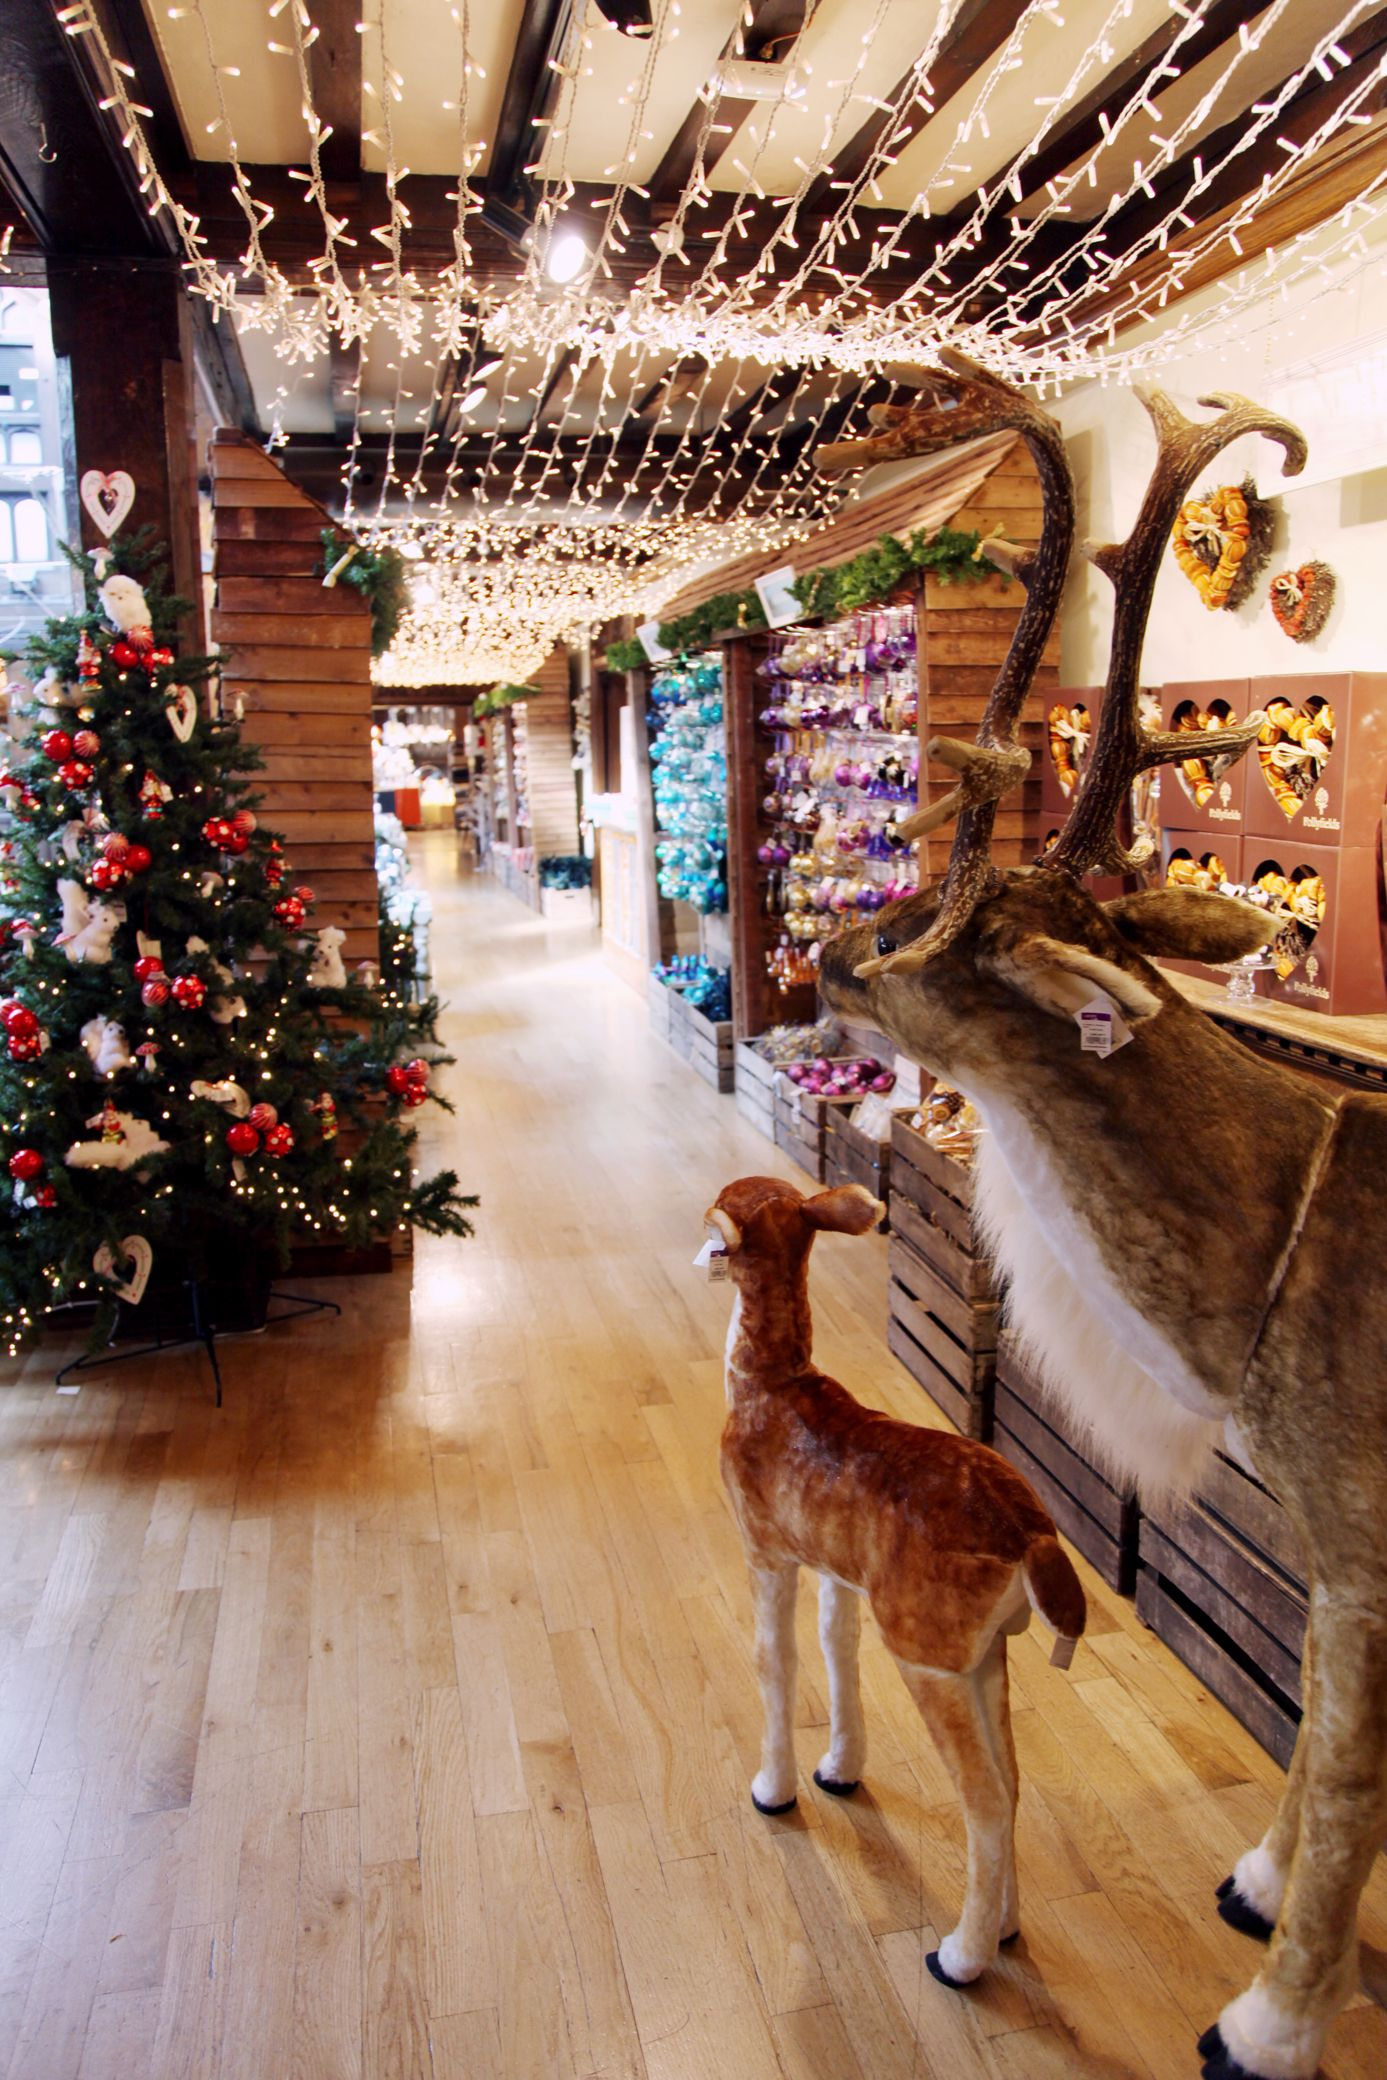 Have you taken your little one to our Christmas shop yet